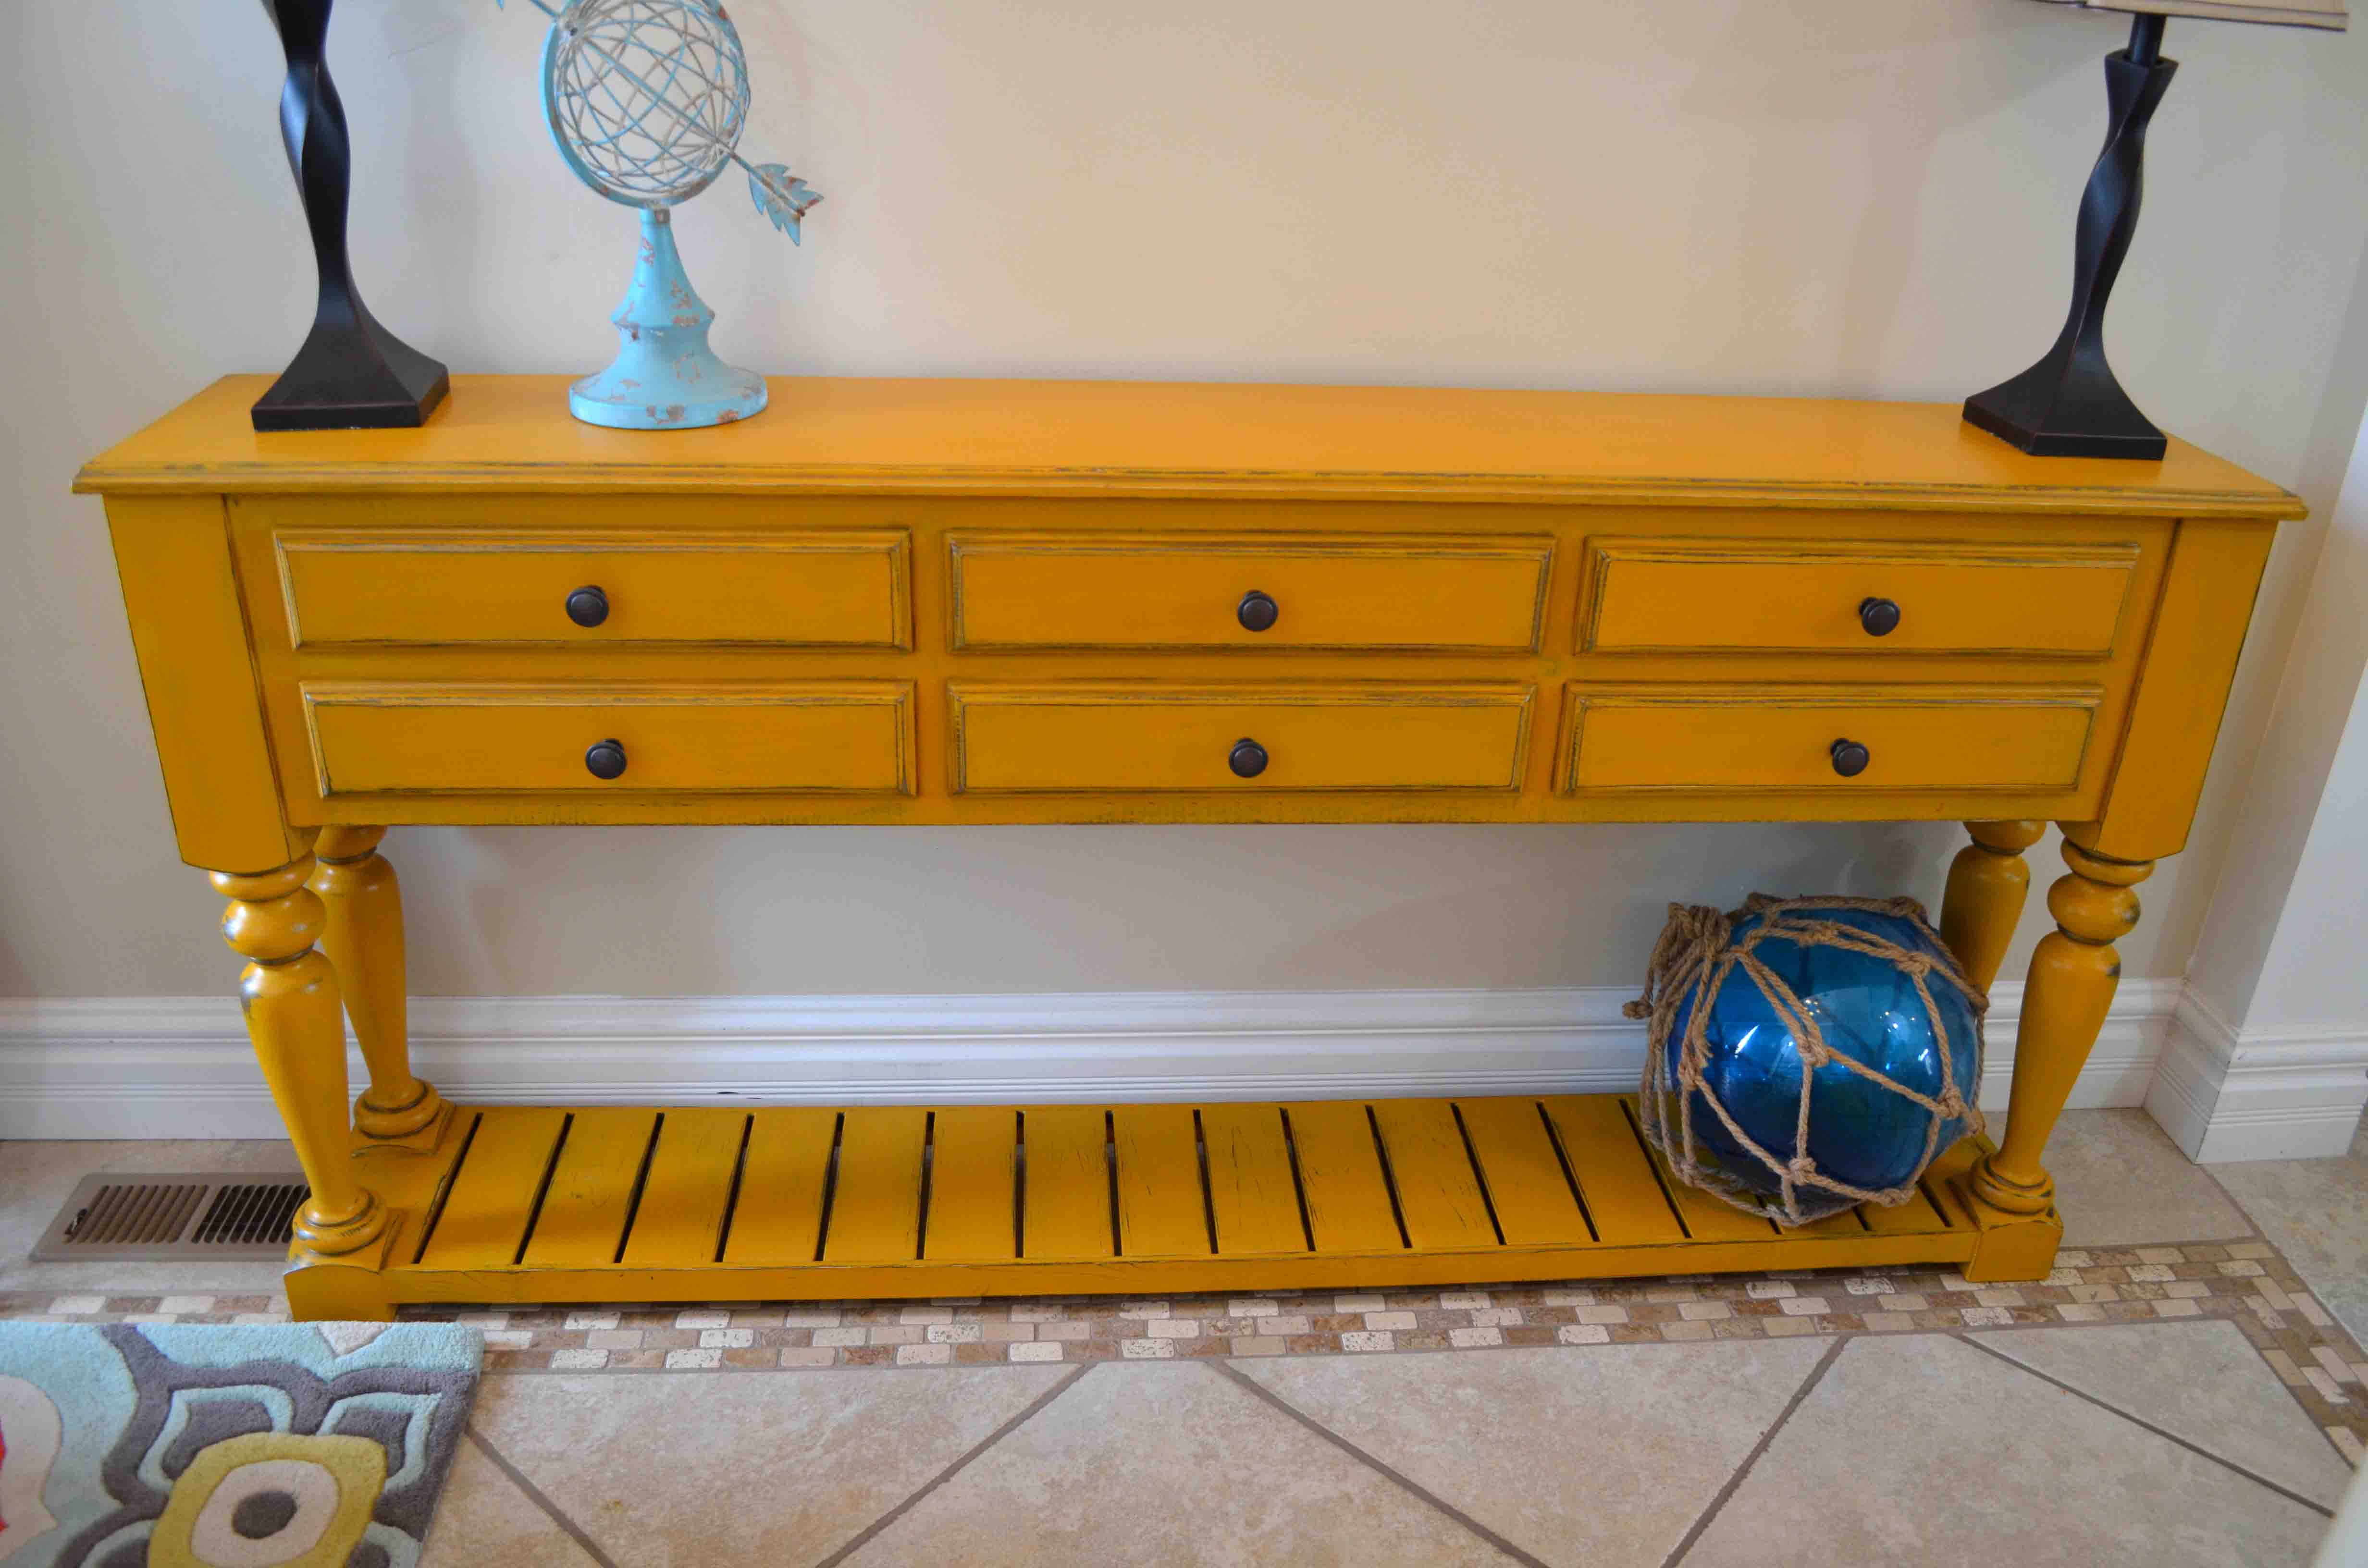 Grand island console table her tool belt for Sofa table yellow